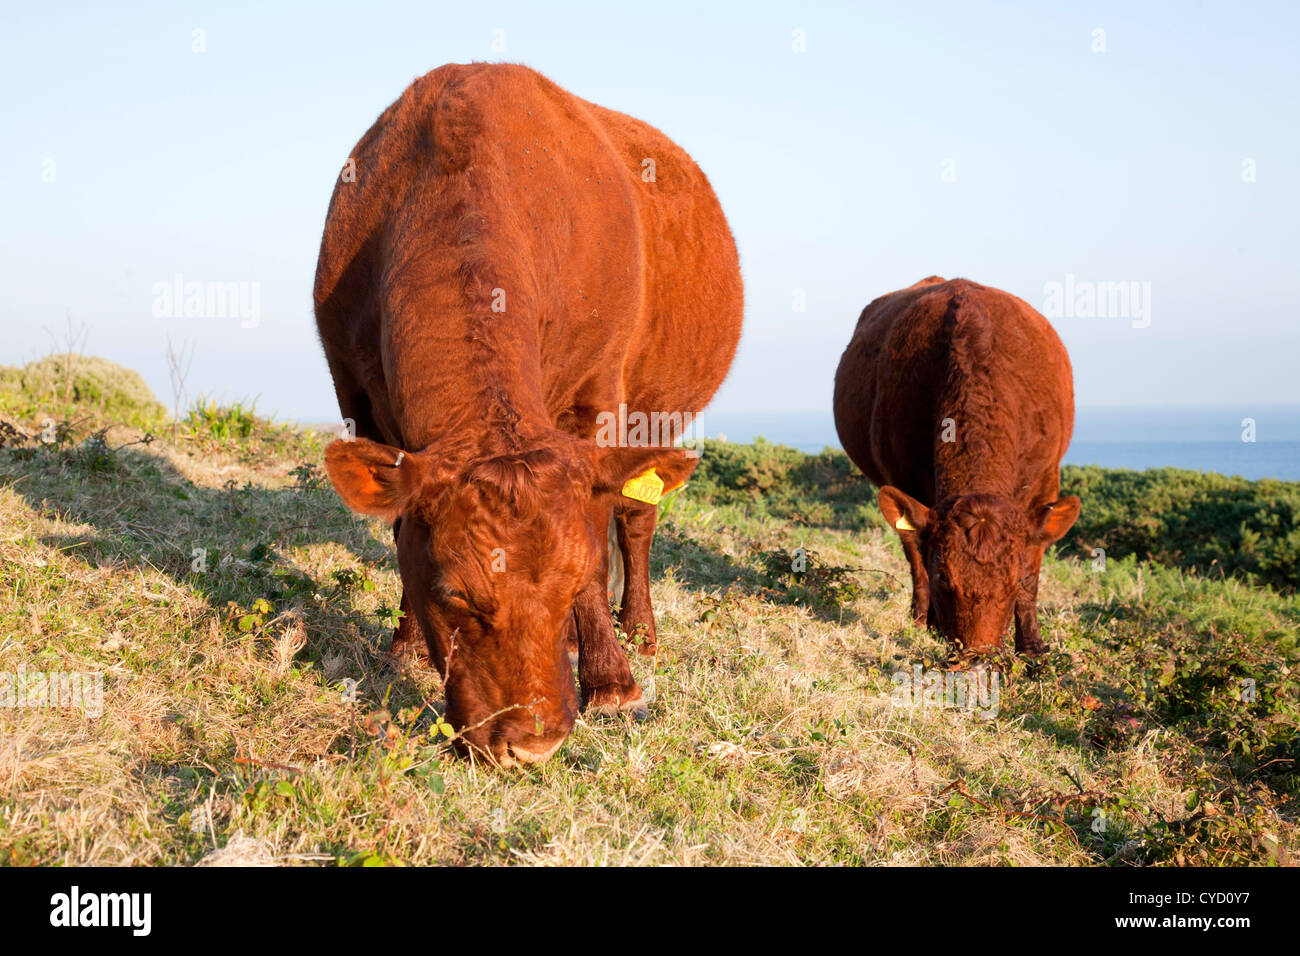 Red Devon Cattle; St Mary's; Isles of Scilly; UK - Stock Image